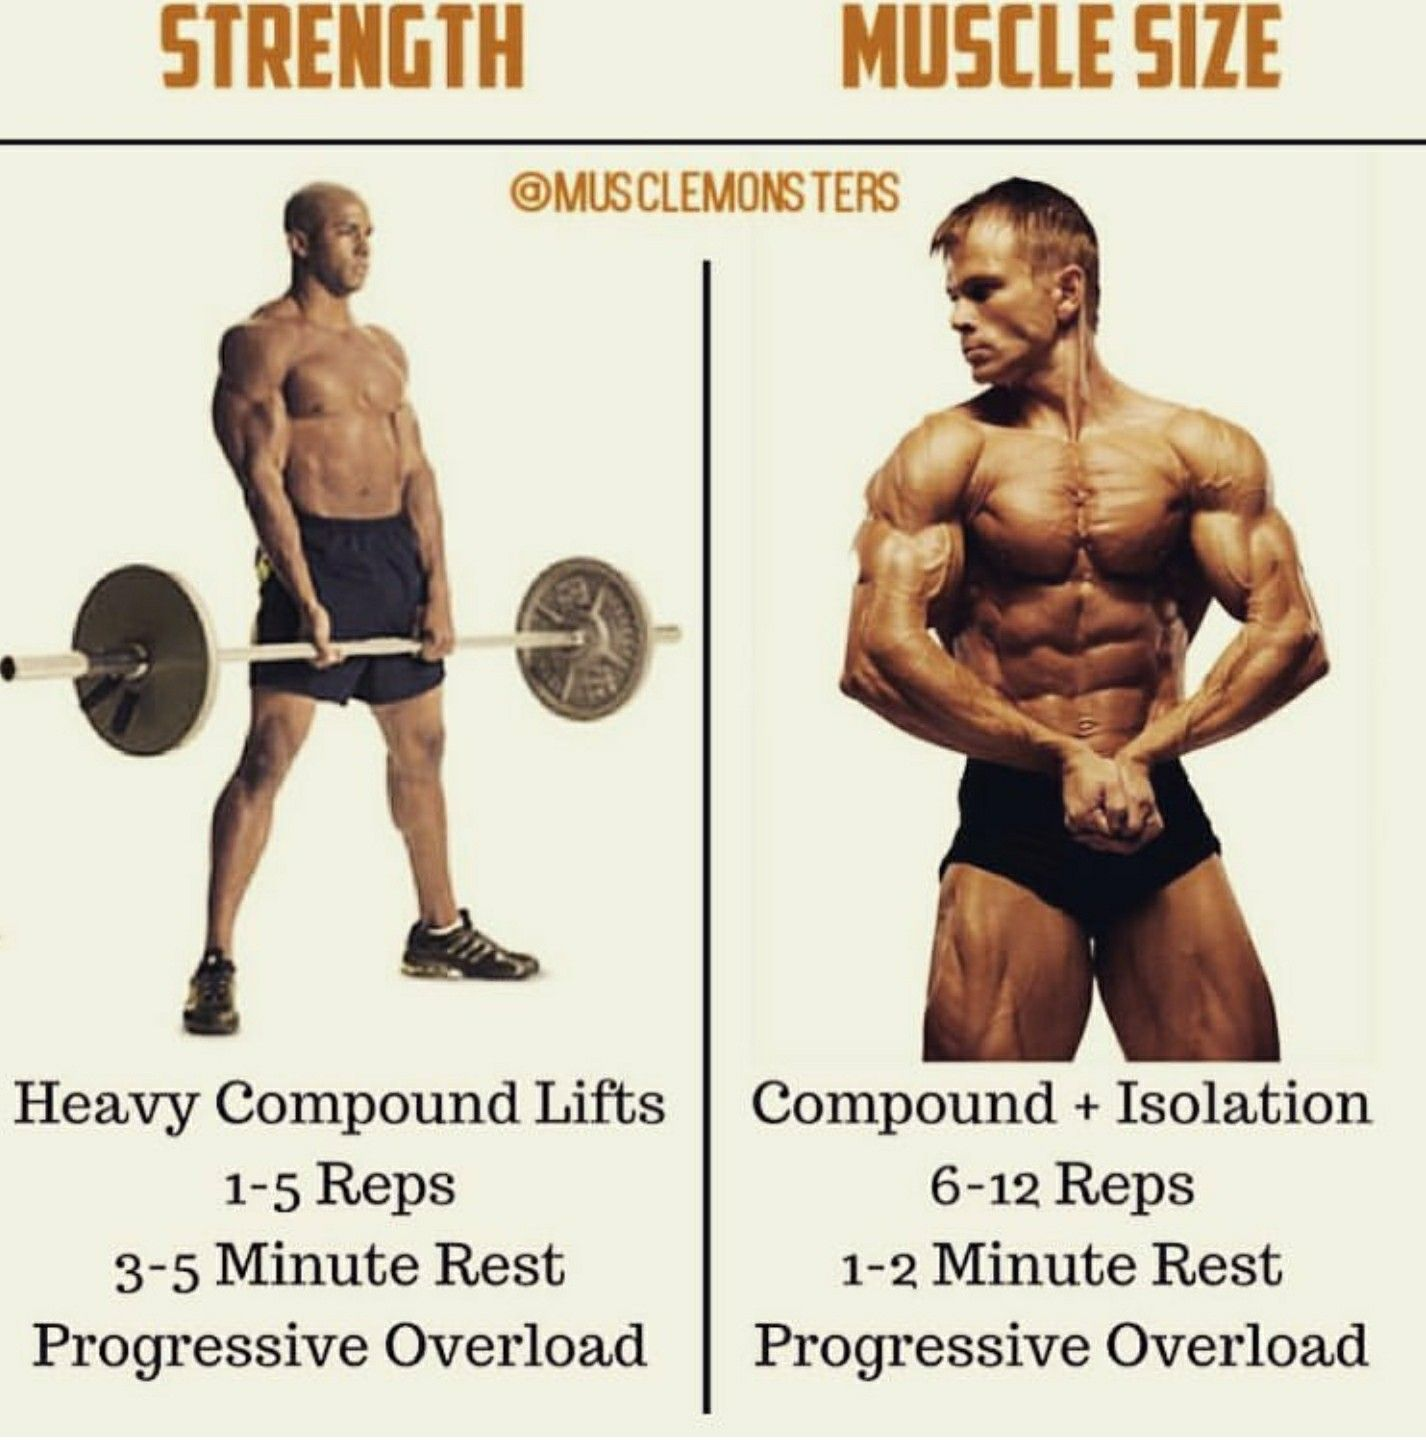 Pin By Earthen Temple On Movement Workout Routine For Men Fast Muscle Growth Workout Program Gym